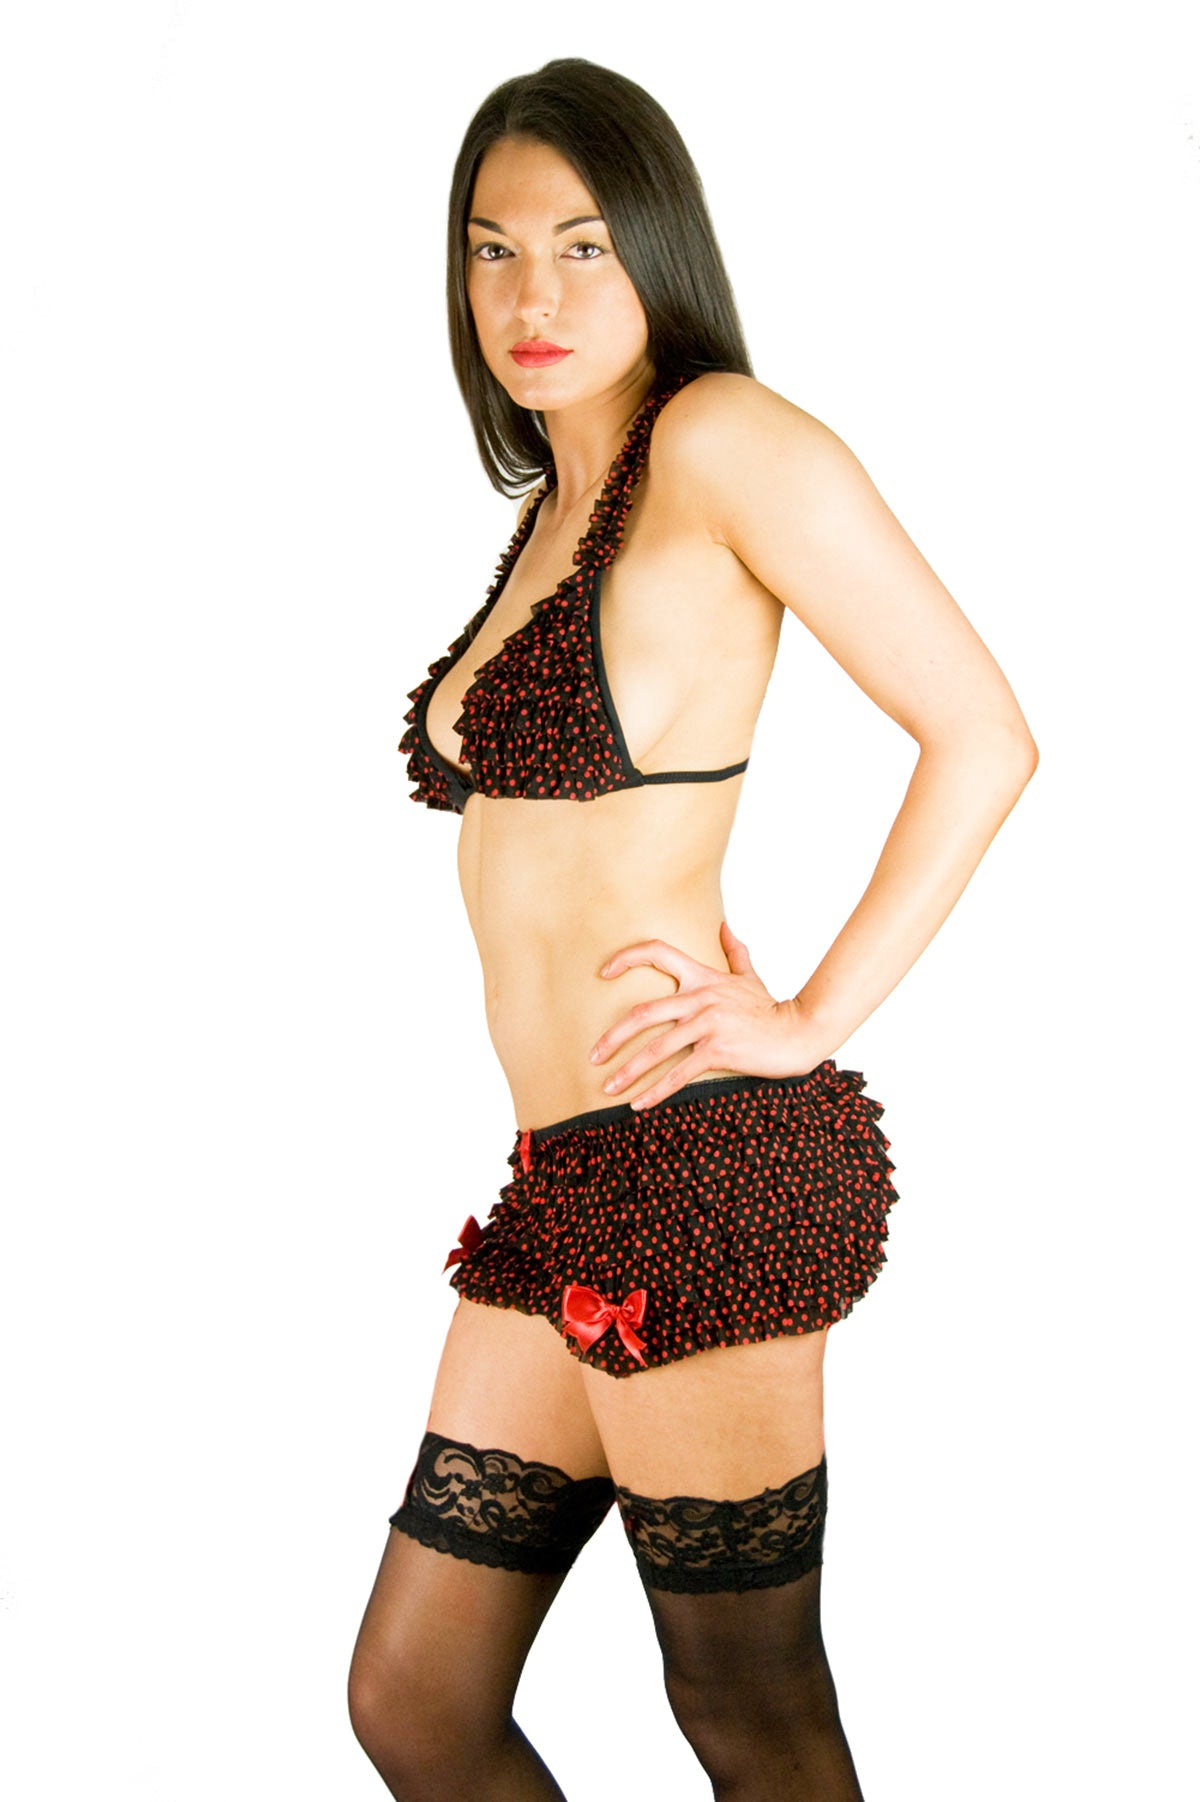 Red polka dot frilly ruffled bra and mini shorts lingerie set with red ribbons